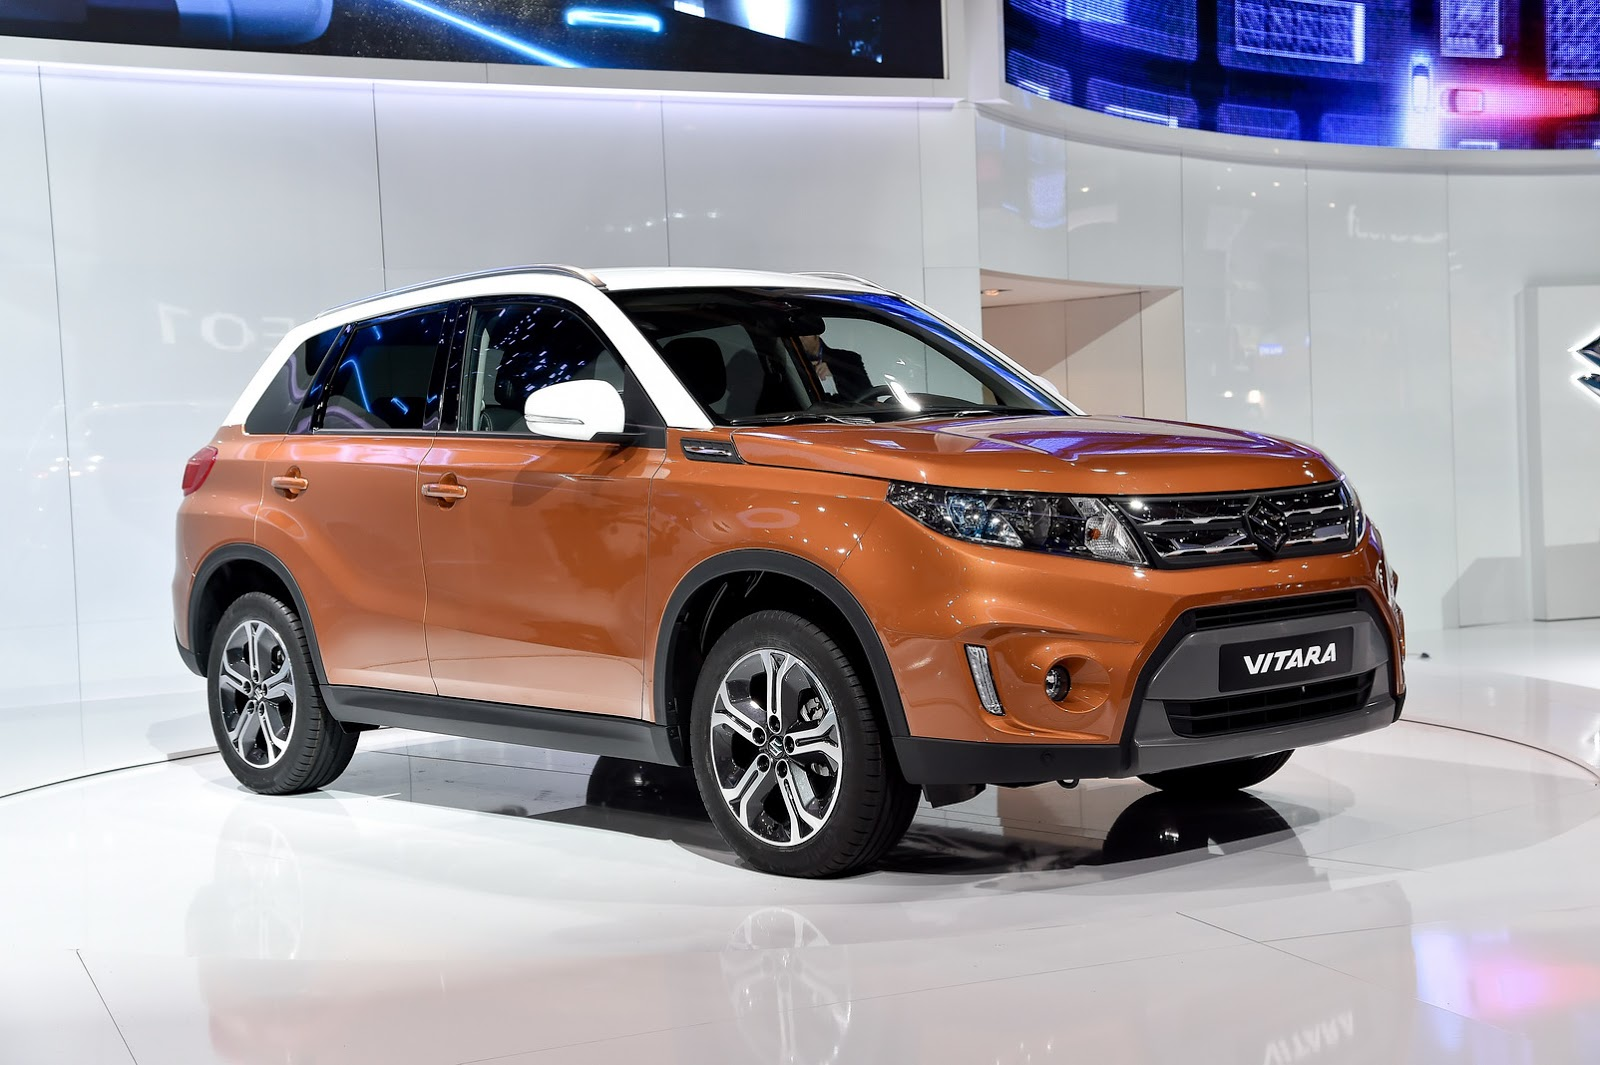 2019 Suzuki Grand Vitara Compact SUV Design Fresh